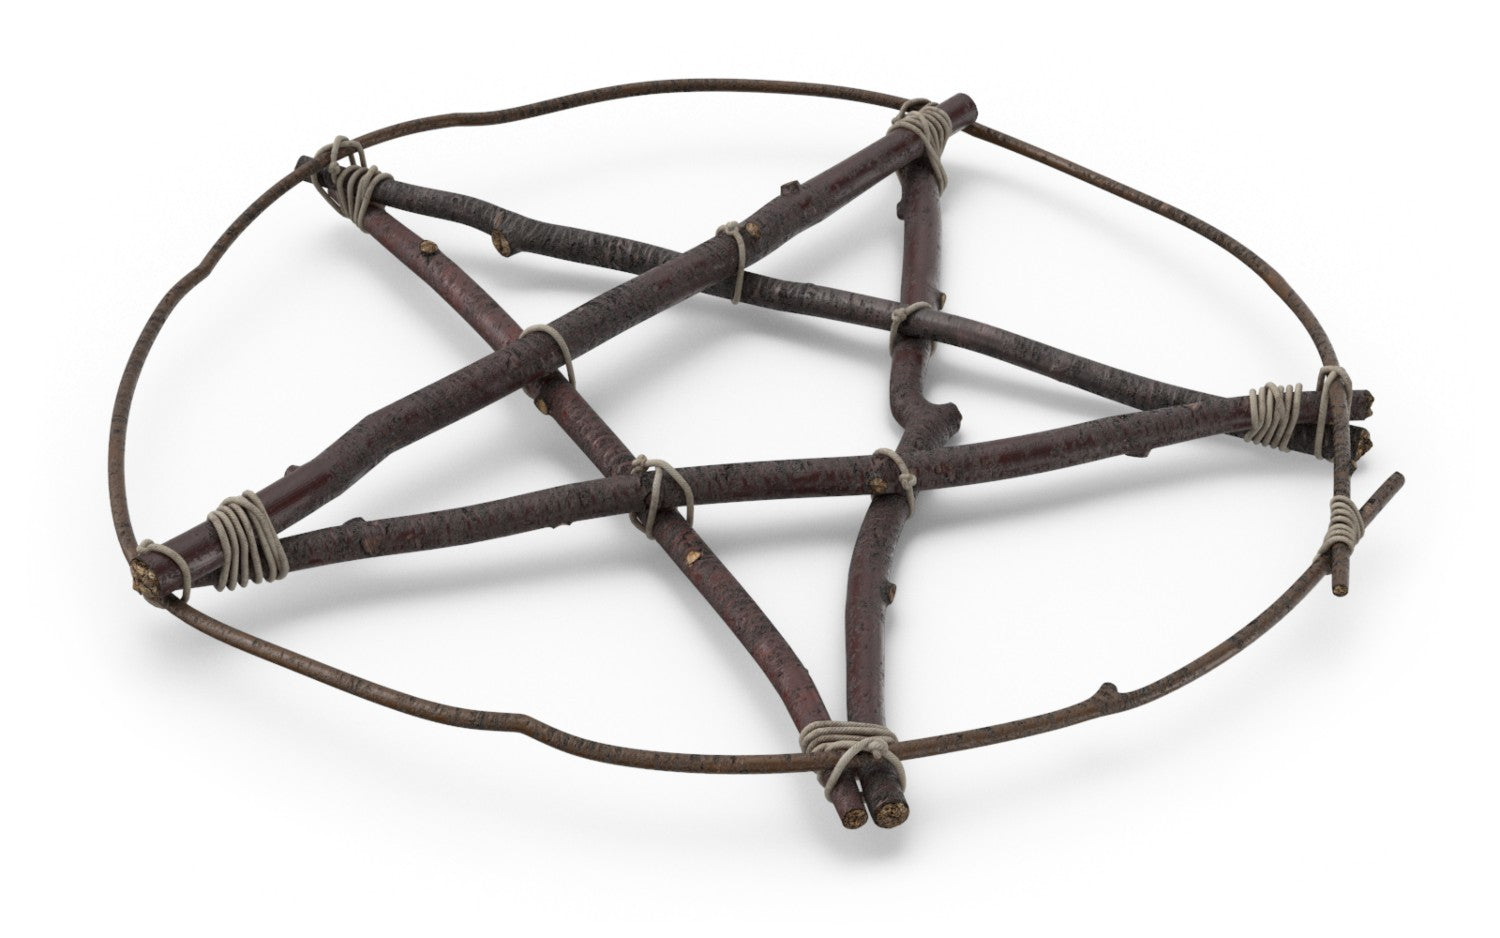 Naturally Wicked Wicca Pentagram AKA Pagan Star Made From Brown Sticks & String